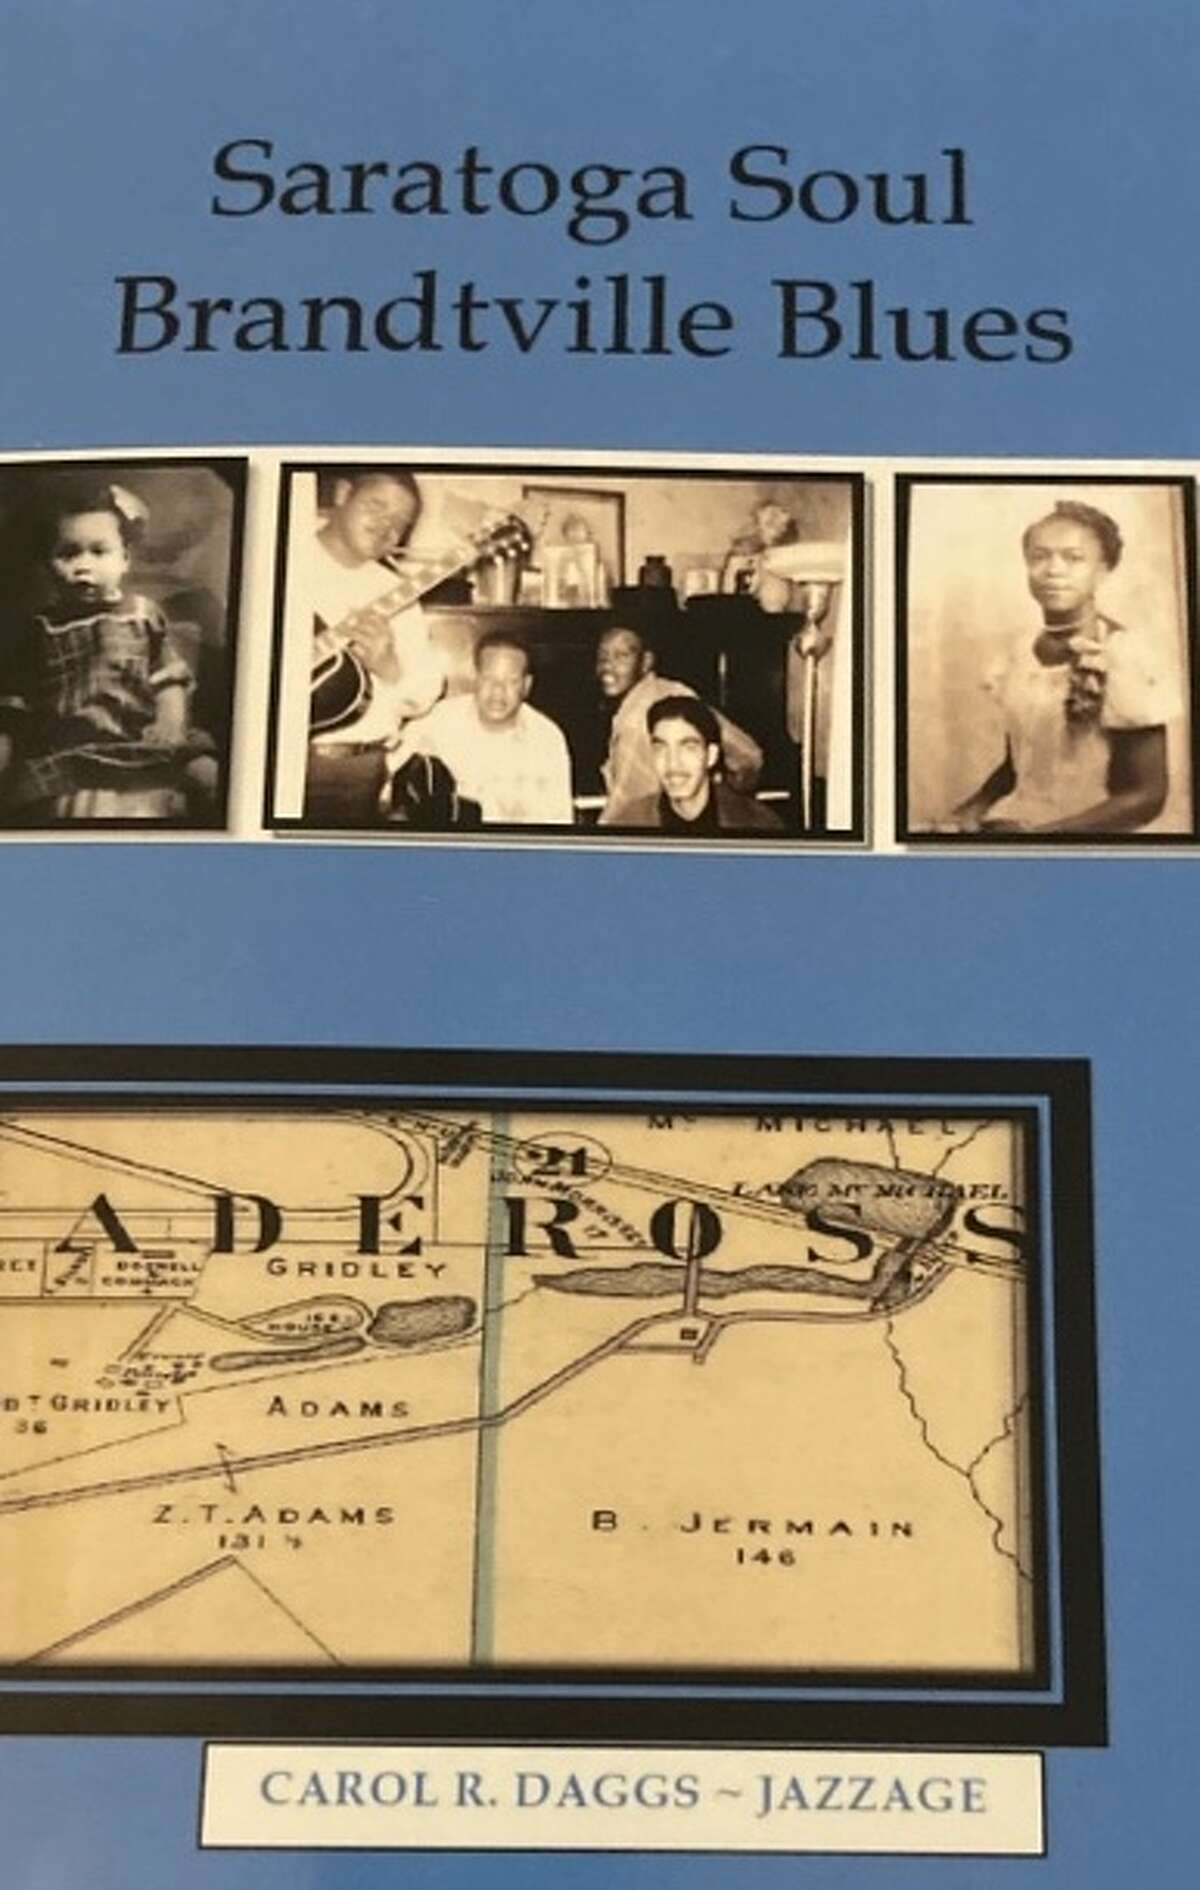 """Carol Daggs, author of """"Saratoga Soul Brandtville Blues,"""" will read from her book this summer in the tent in the Brandtville area of Saratoga Springs."""